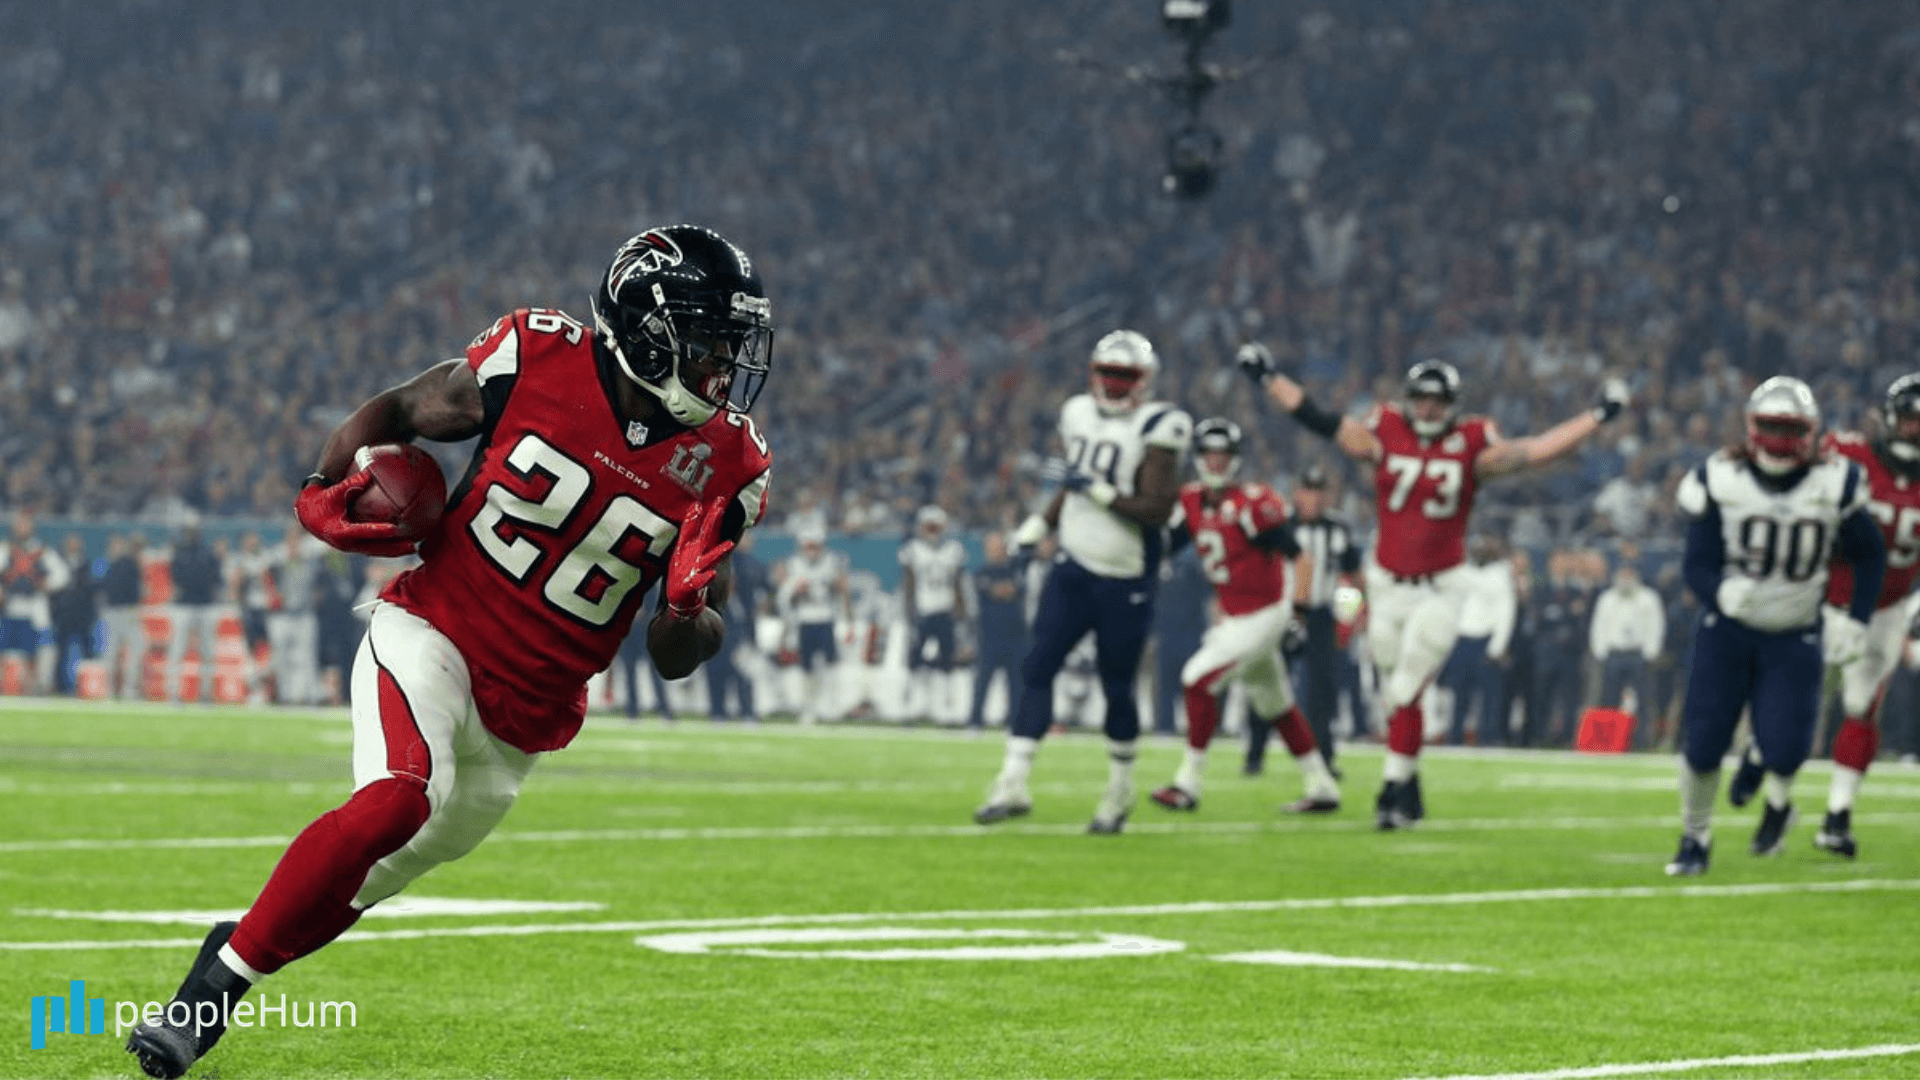 The three critical leadership lessons we can learn from super bowl 51